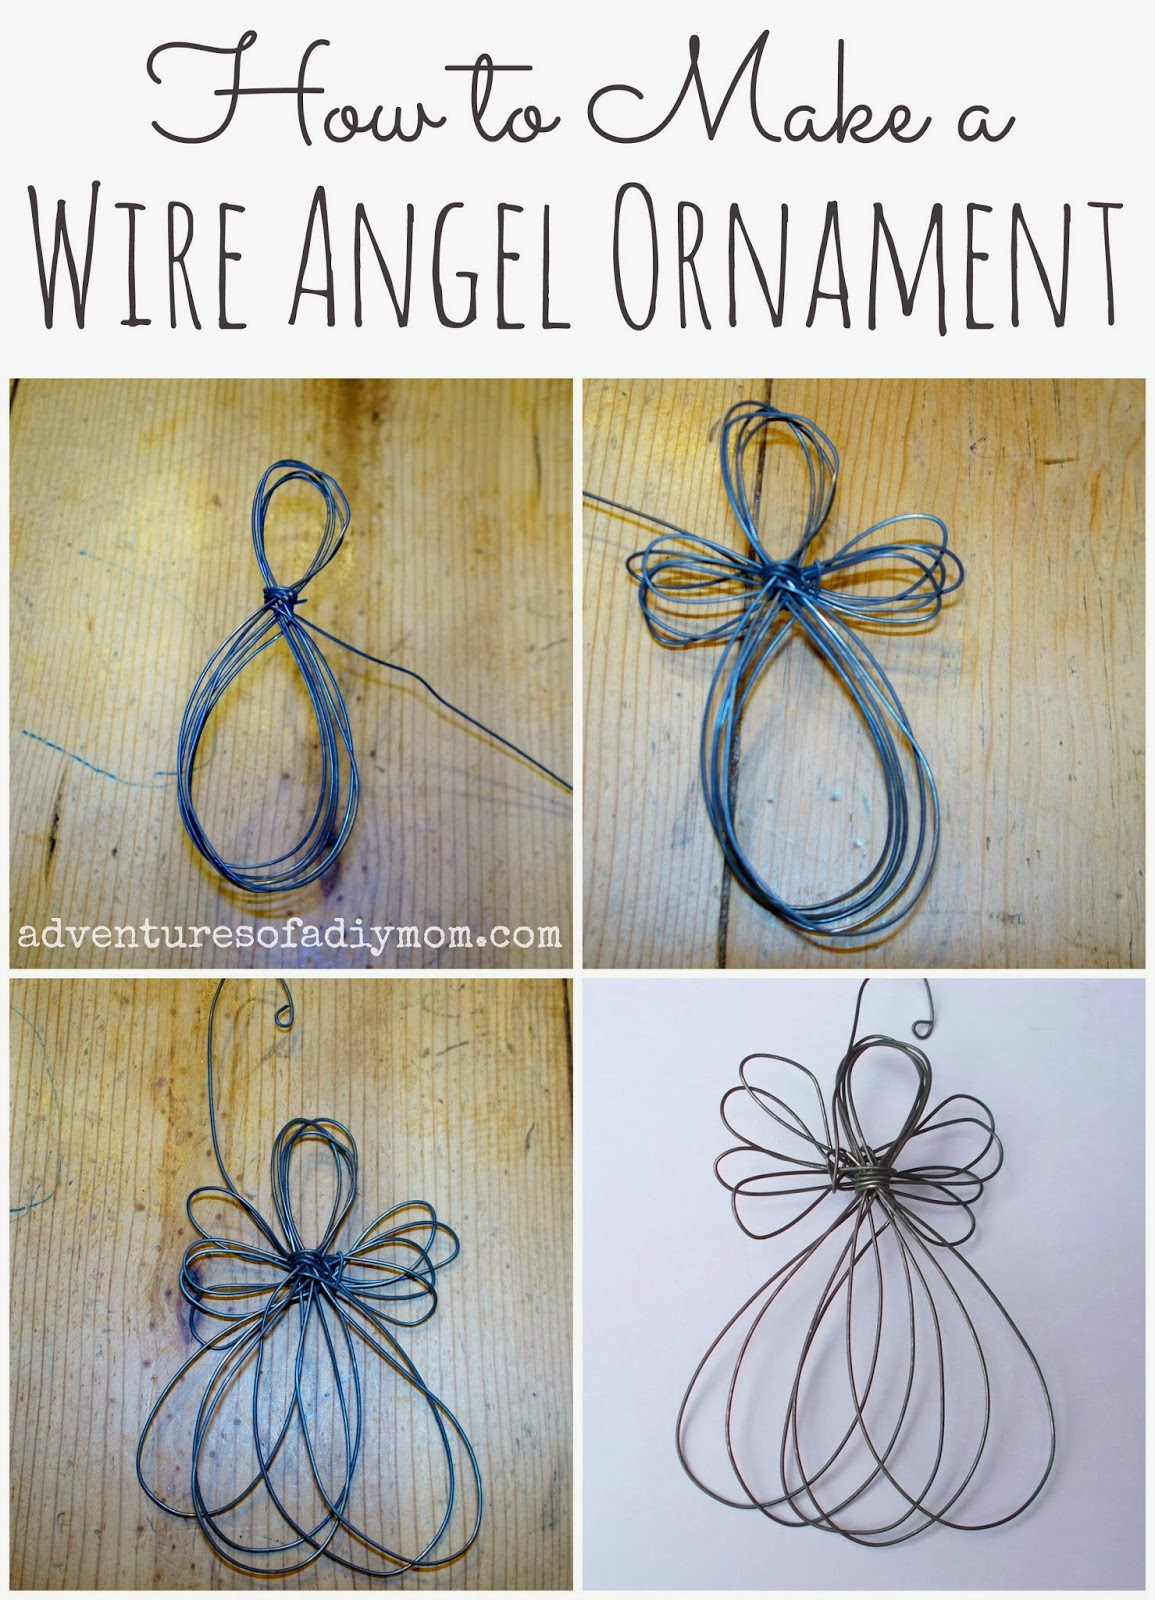 How to Make a Wire Angel Ornament - Nativity Ornament ...